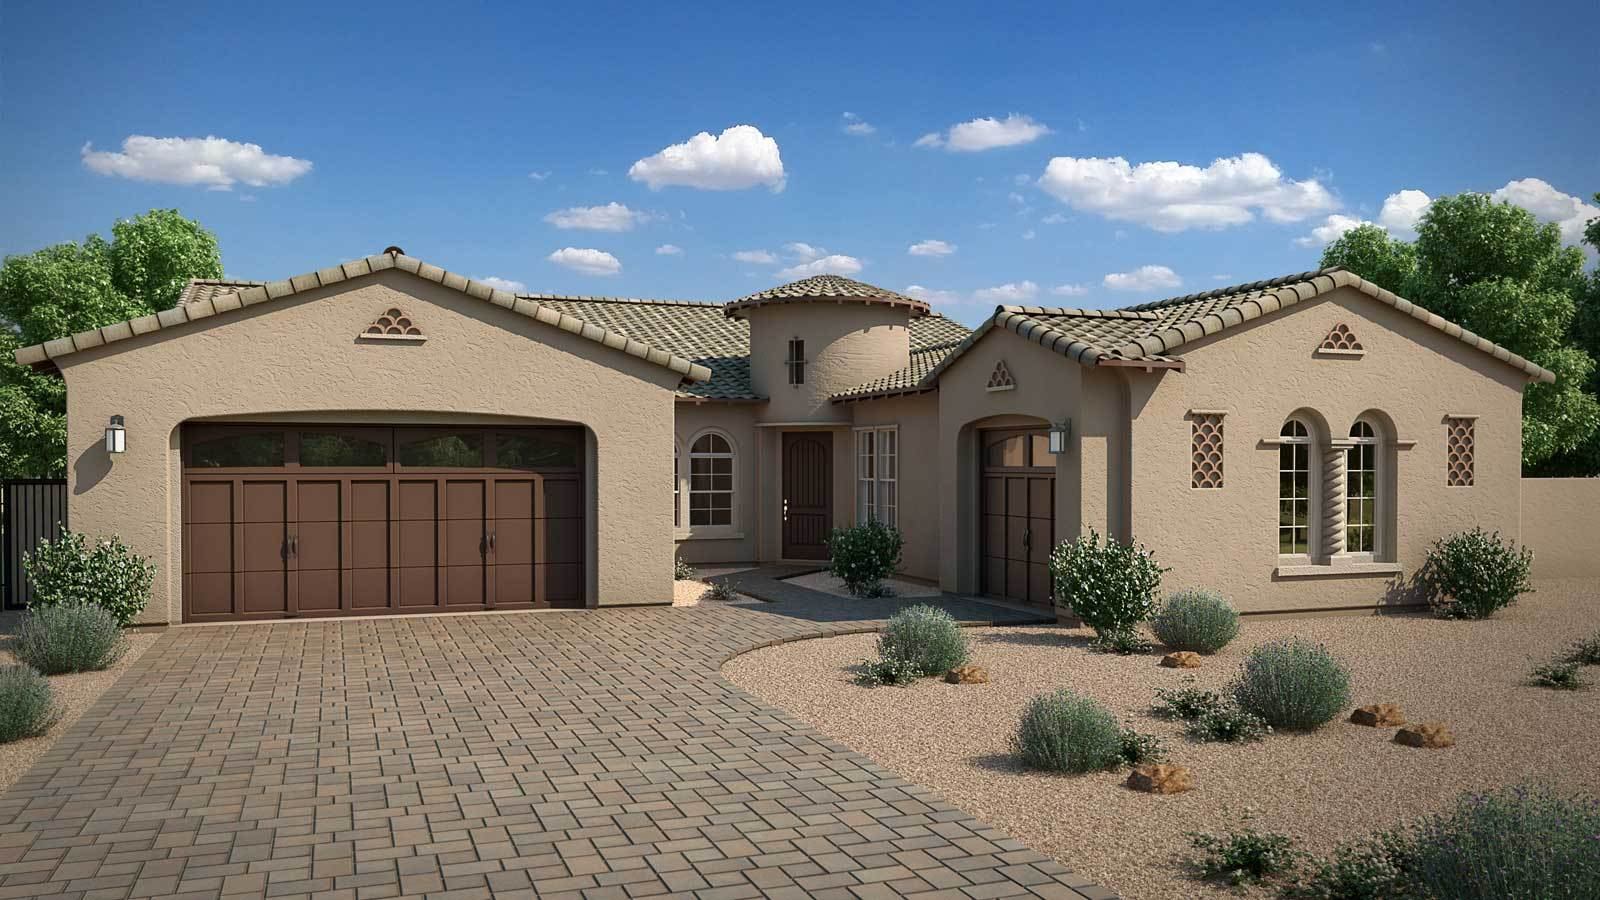 Single Family for Sale at Hawthorn Manor - Quartz 2361 E. Cherrywood Place Chandler, Arizona 85249 United States